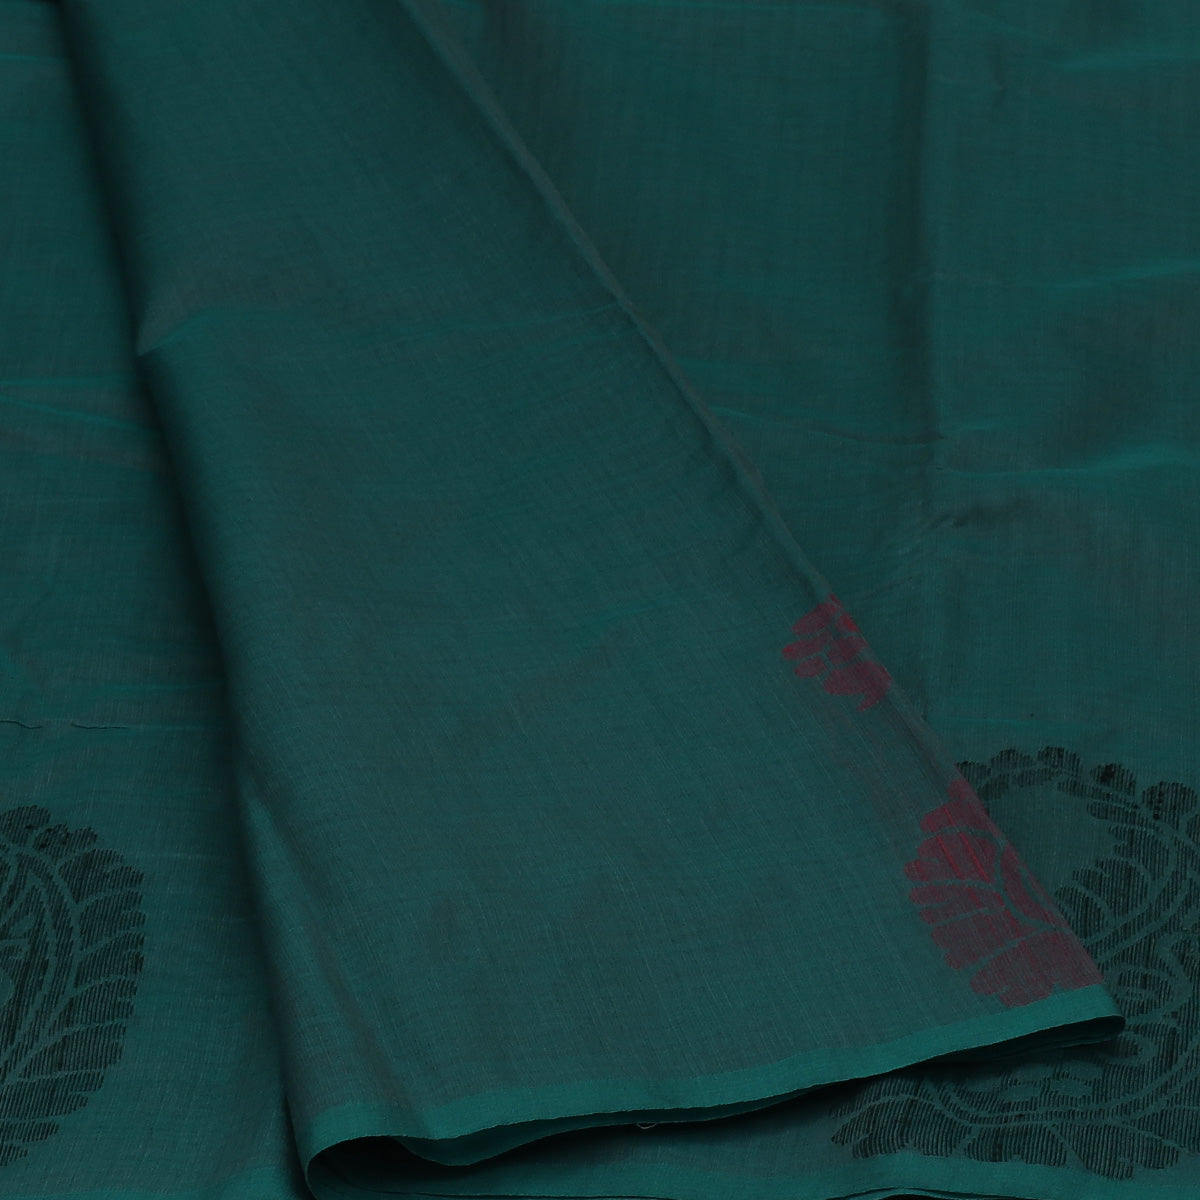 Kora Silk Saree Teal Blue and Black with Simple Border